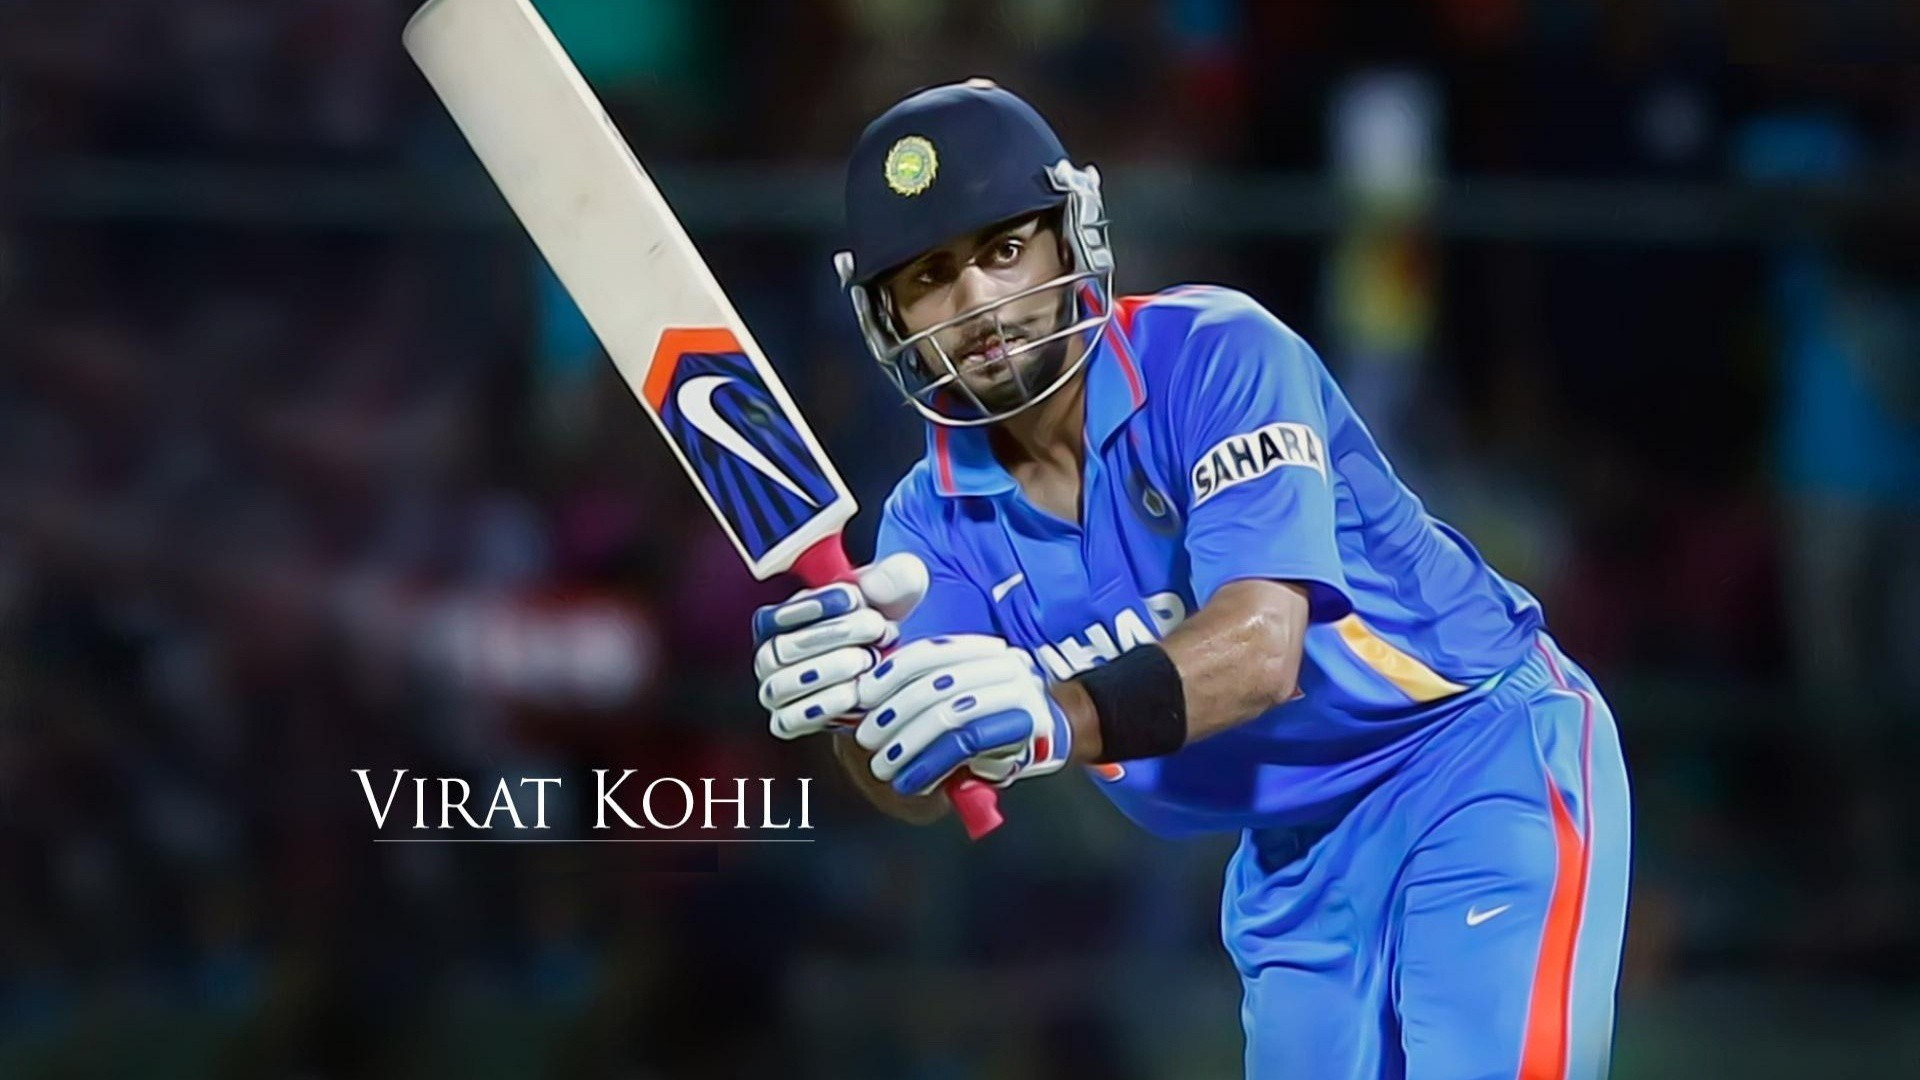 Download Best Virat Kohli Cricket Player HD Wallpaper